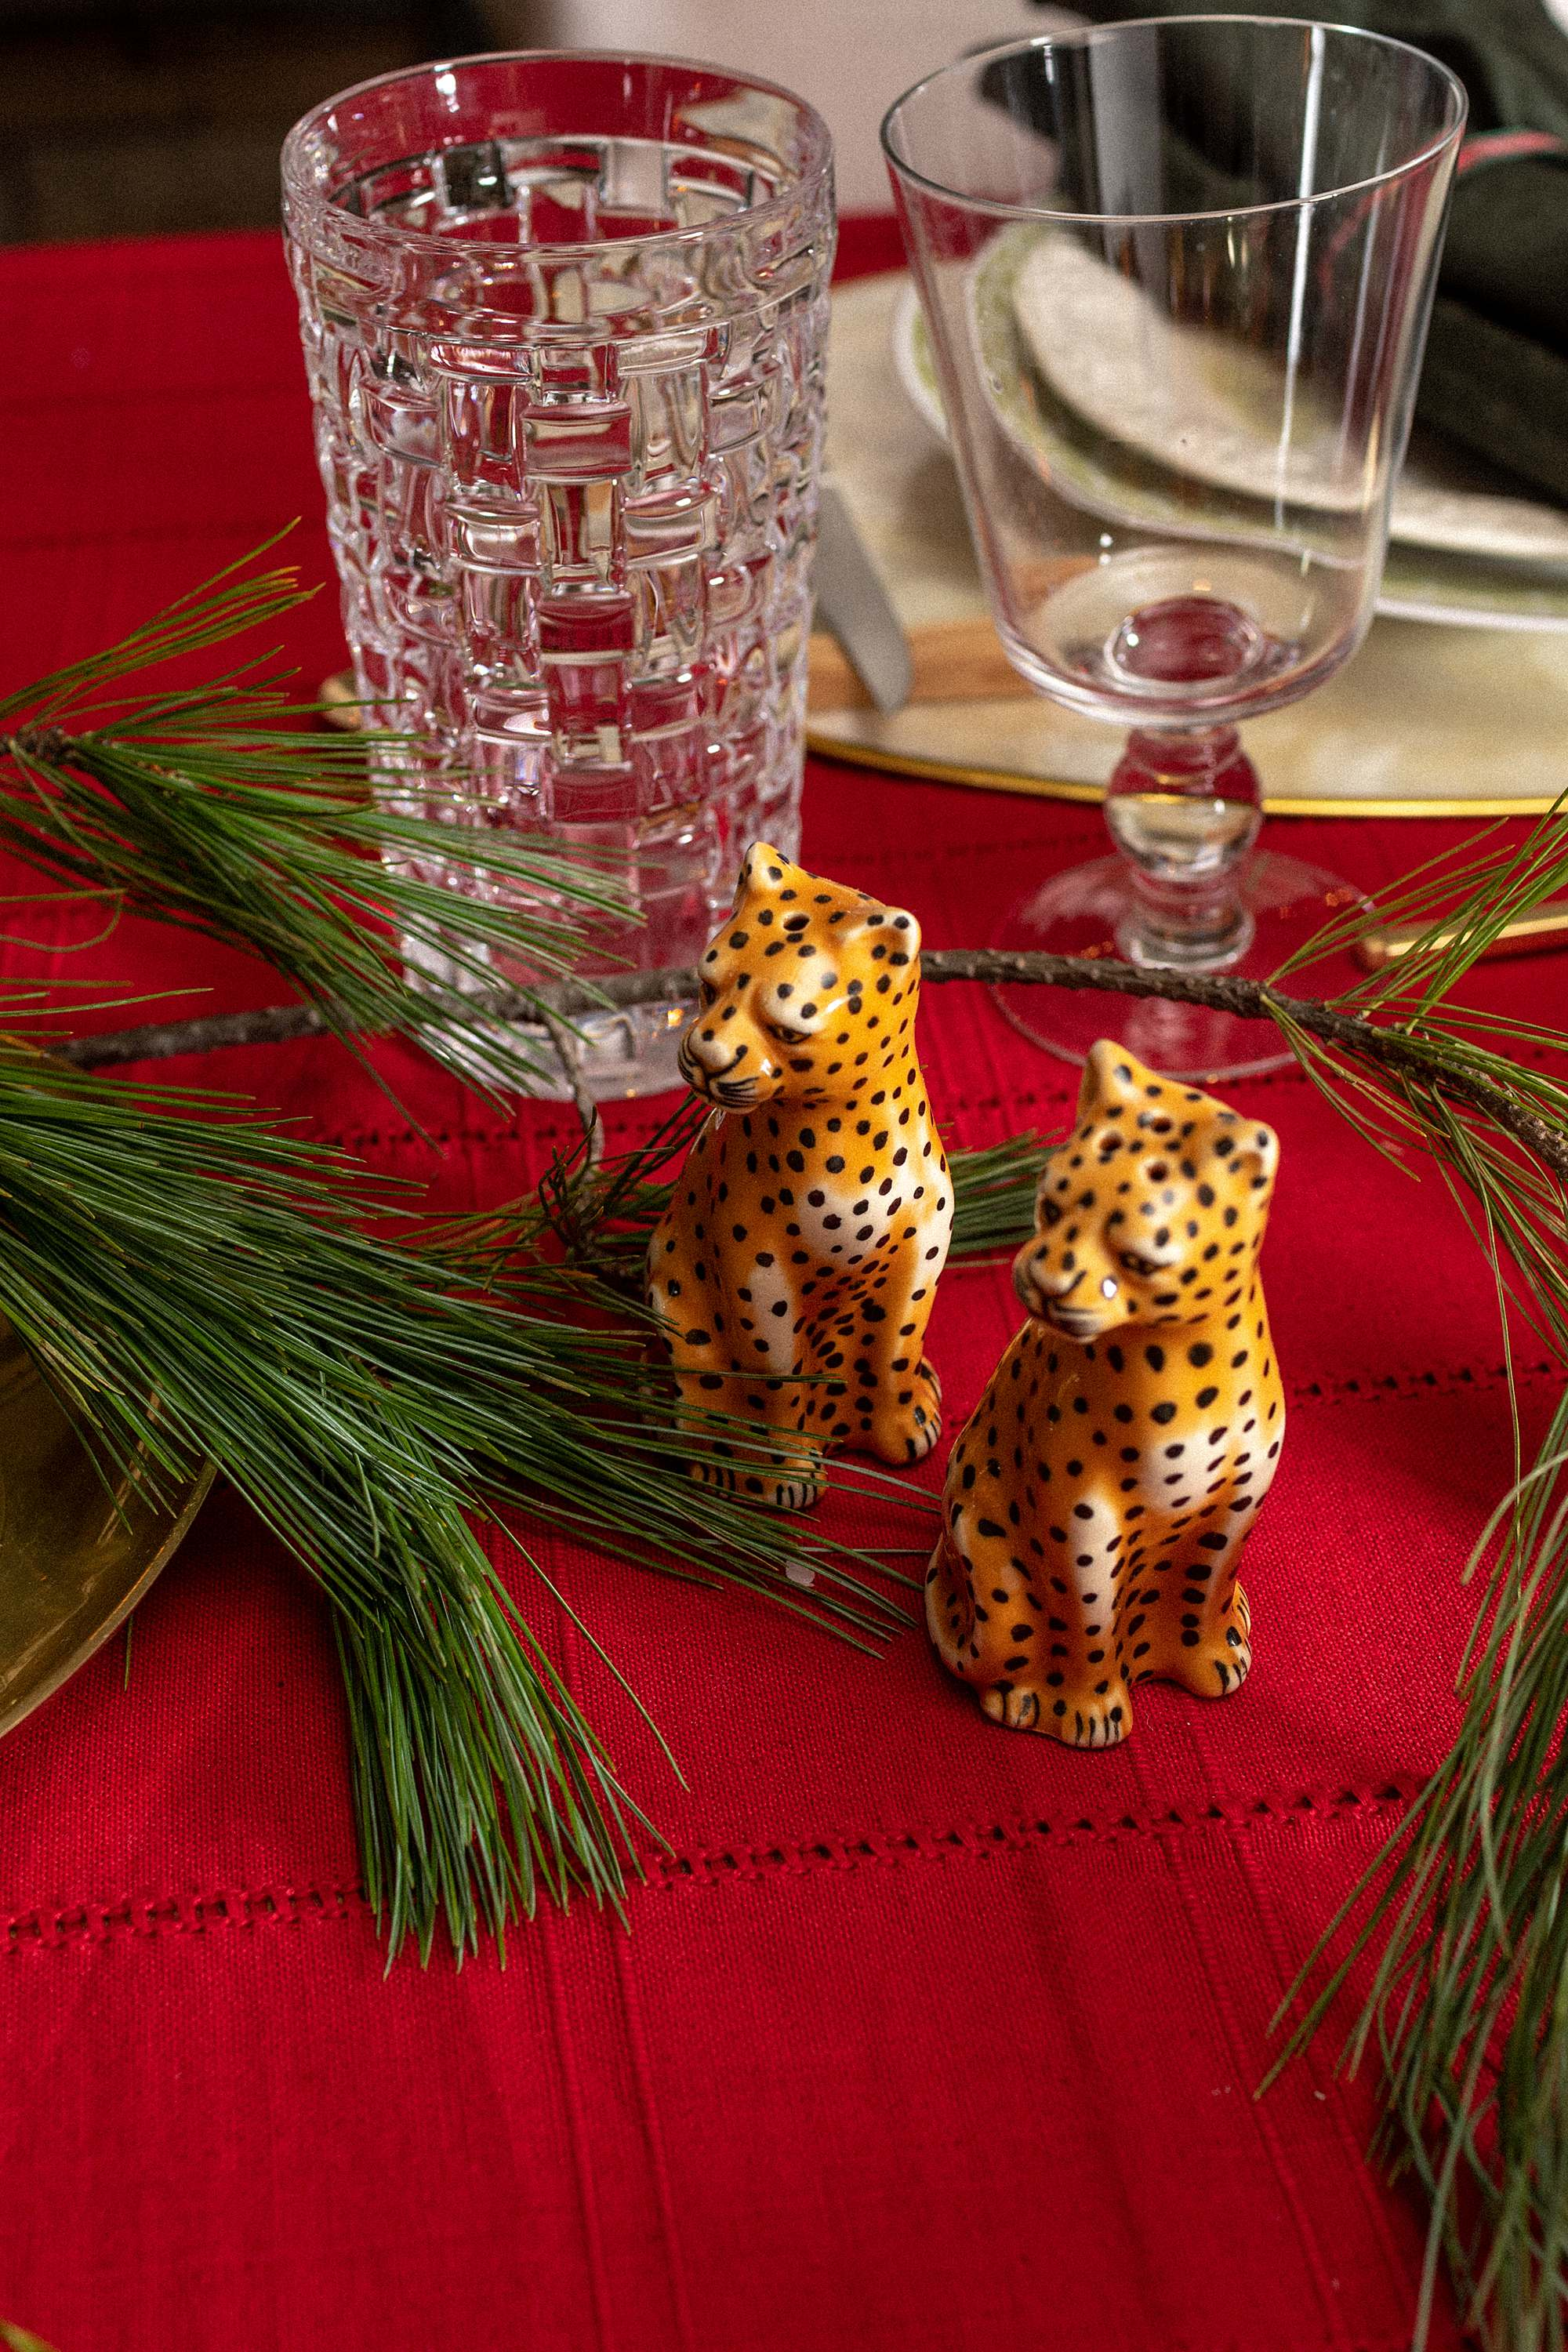 leopard salt and pepper shakers, holiday party christmas party red tablecloth